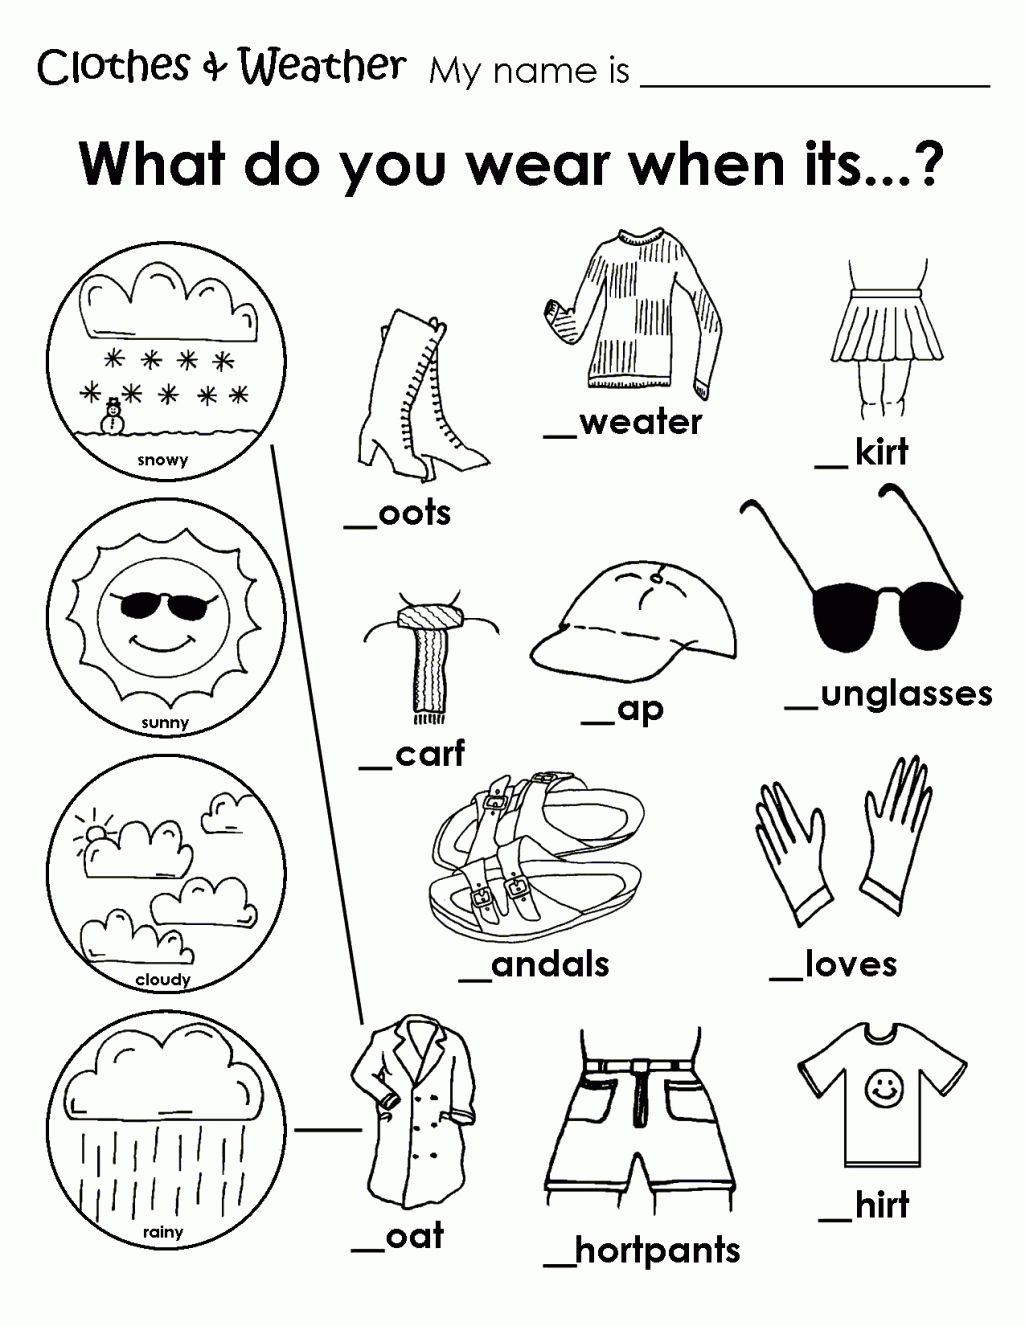 Worksheets Free Printable Weather Worksheets printable weather clothes worksheet memory care activities worksheet